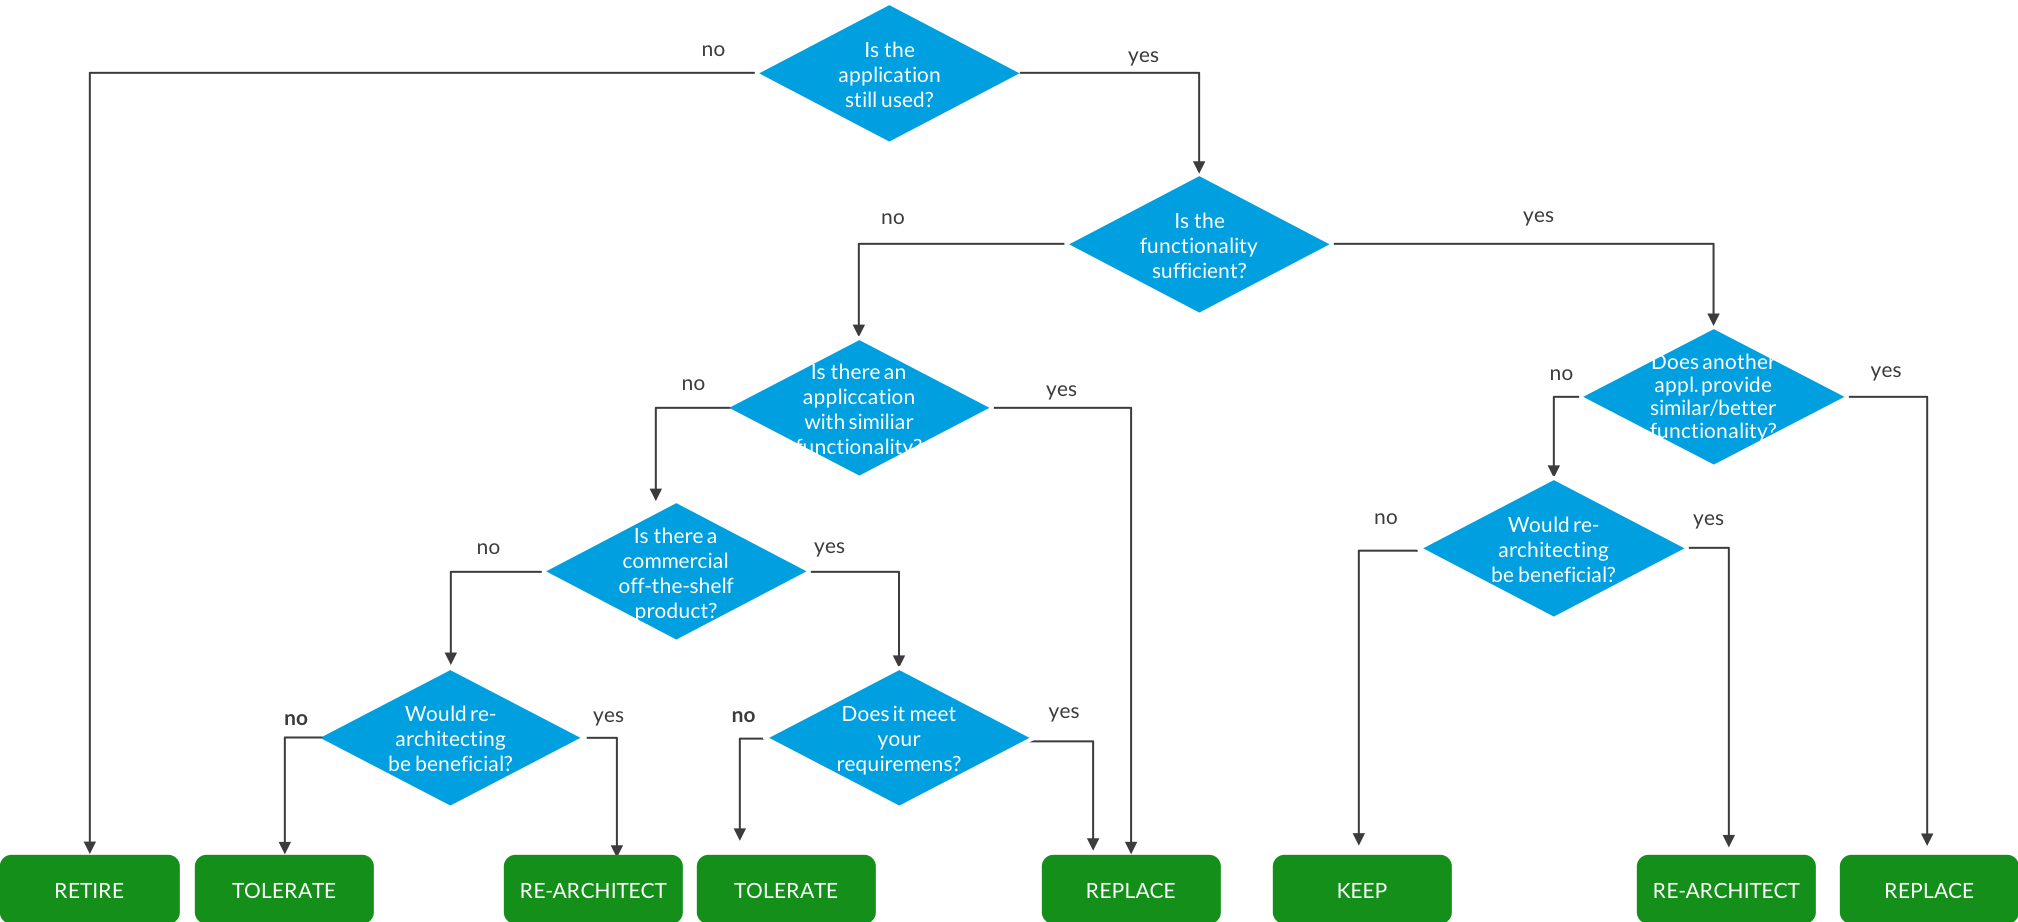 Graphic_8_decision-tree-for-application-rationalization